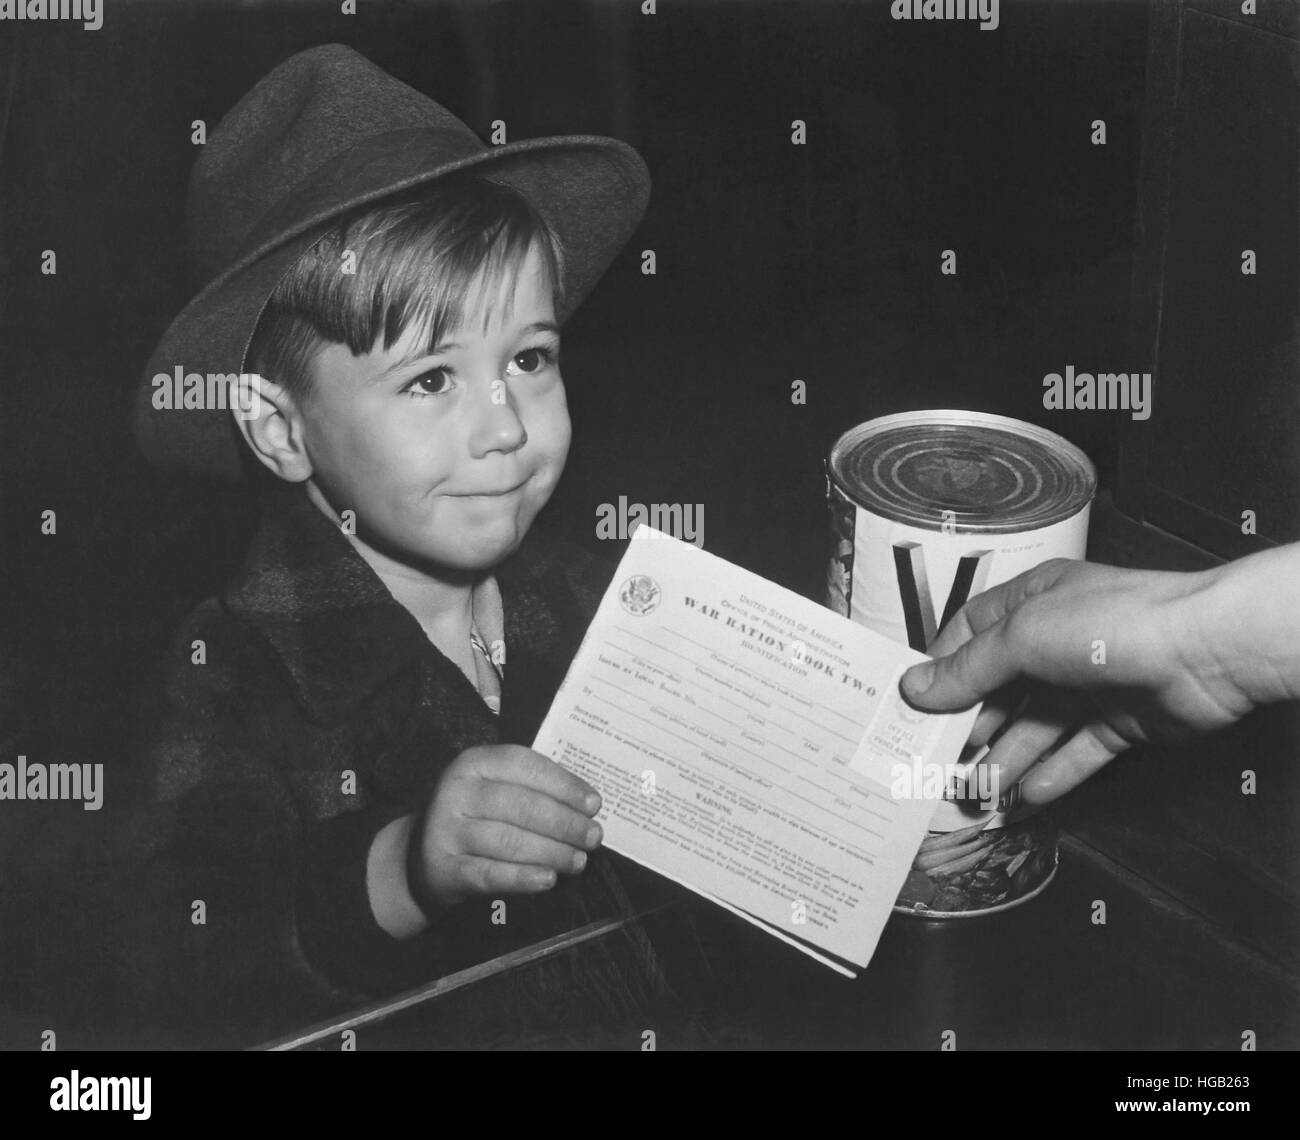 An eager school boy gets his first experience in using War Ration Book Two. circa 1943 Stock Photo